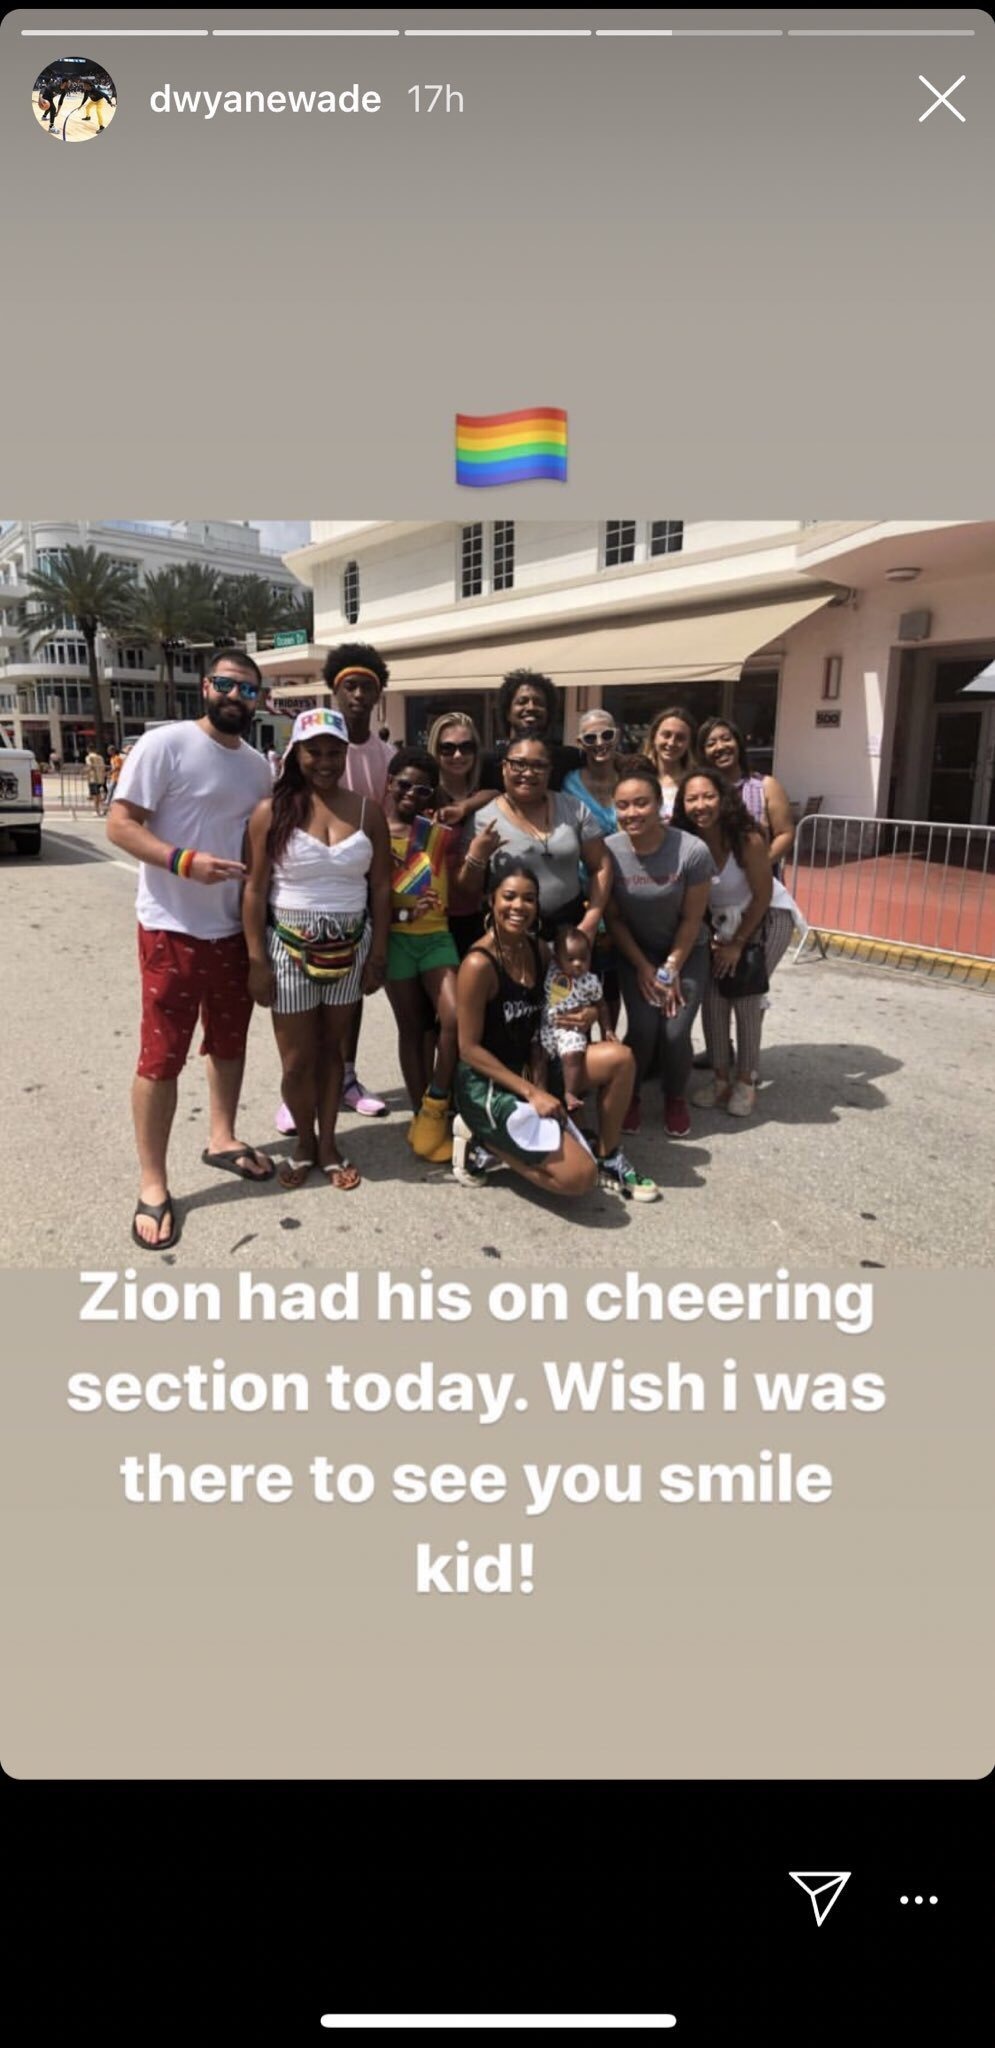 Zion Wade and his family & friends. | Source: Screenshot from Instagram story/dwyanewade